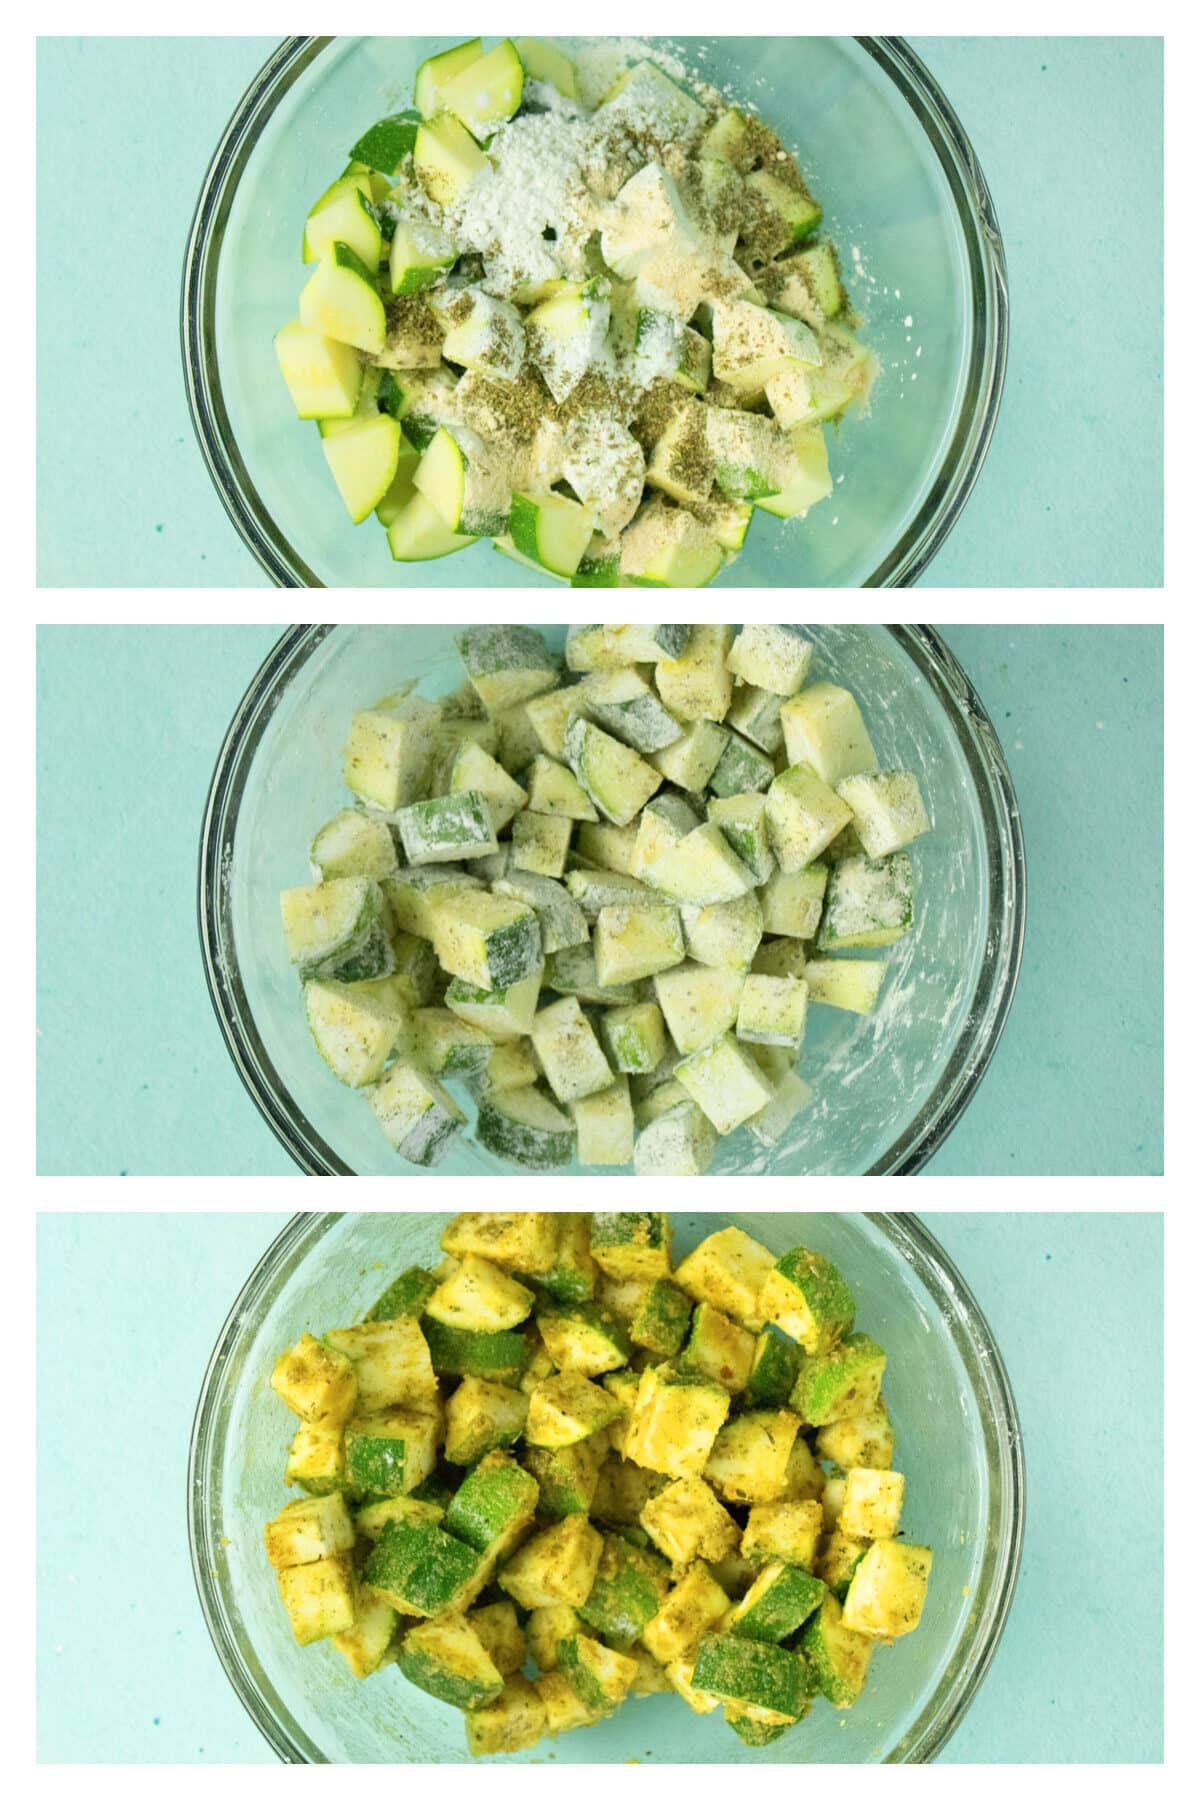 image collage showing diced zucchini with cornstarch and spices, then coated in the cornstarch mixture, then coated in nutritional yeast